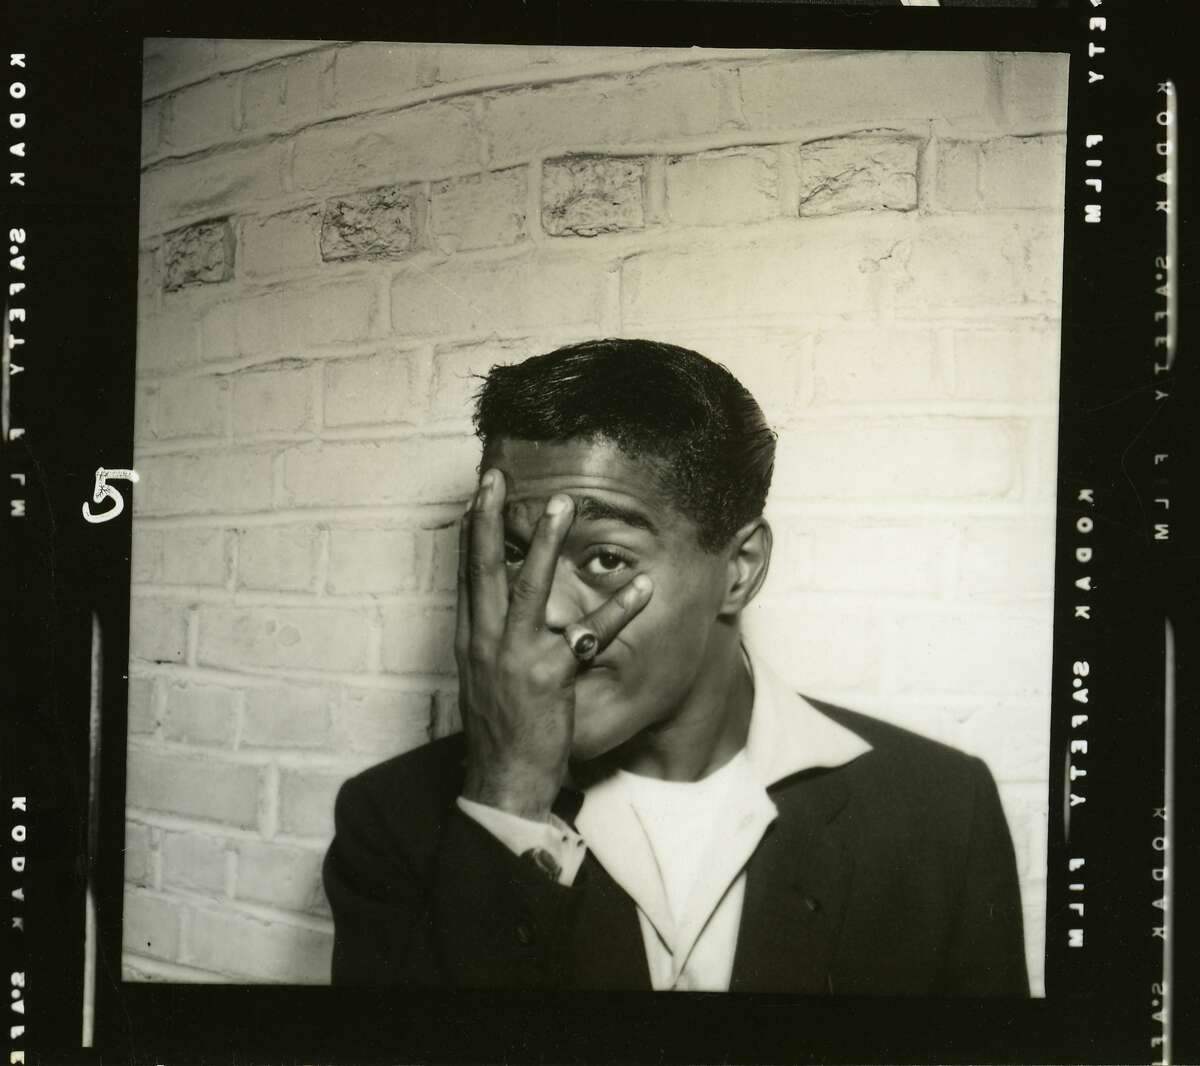 """The documentary """"Sammy Davis, Jr.: I've Gotta Be Me"""" explores the contradictions of the groundbreaking entertainer."""